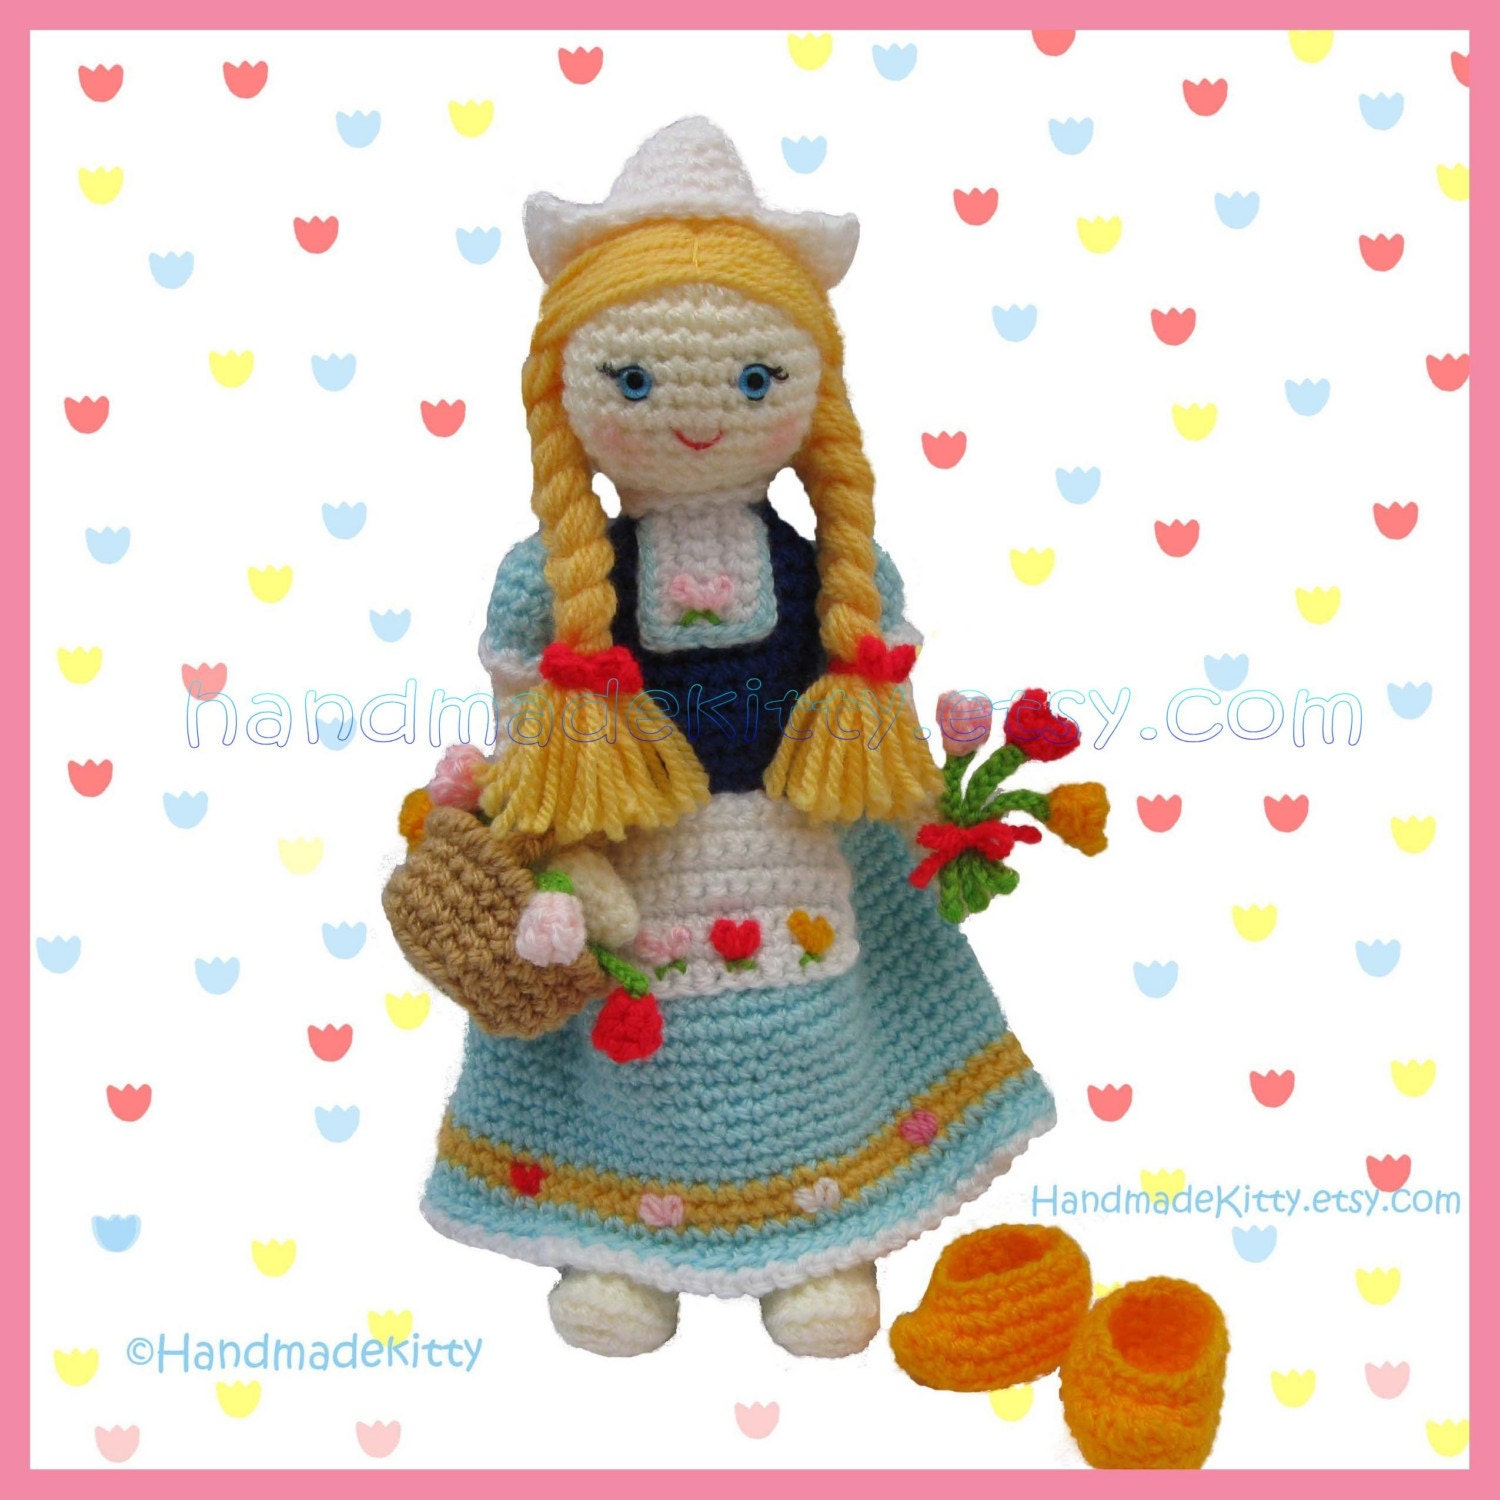 Crochet Patterns: Making Dolls - Free Crochet Patterns